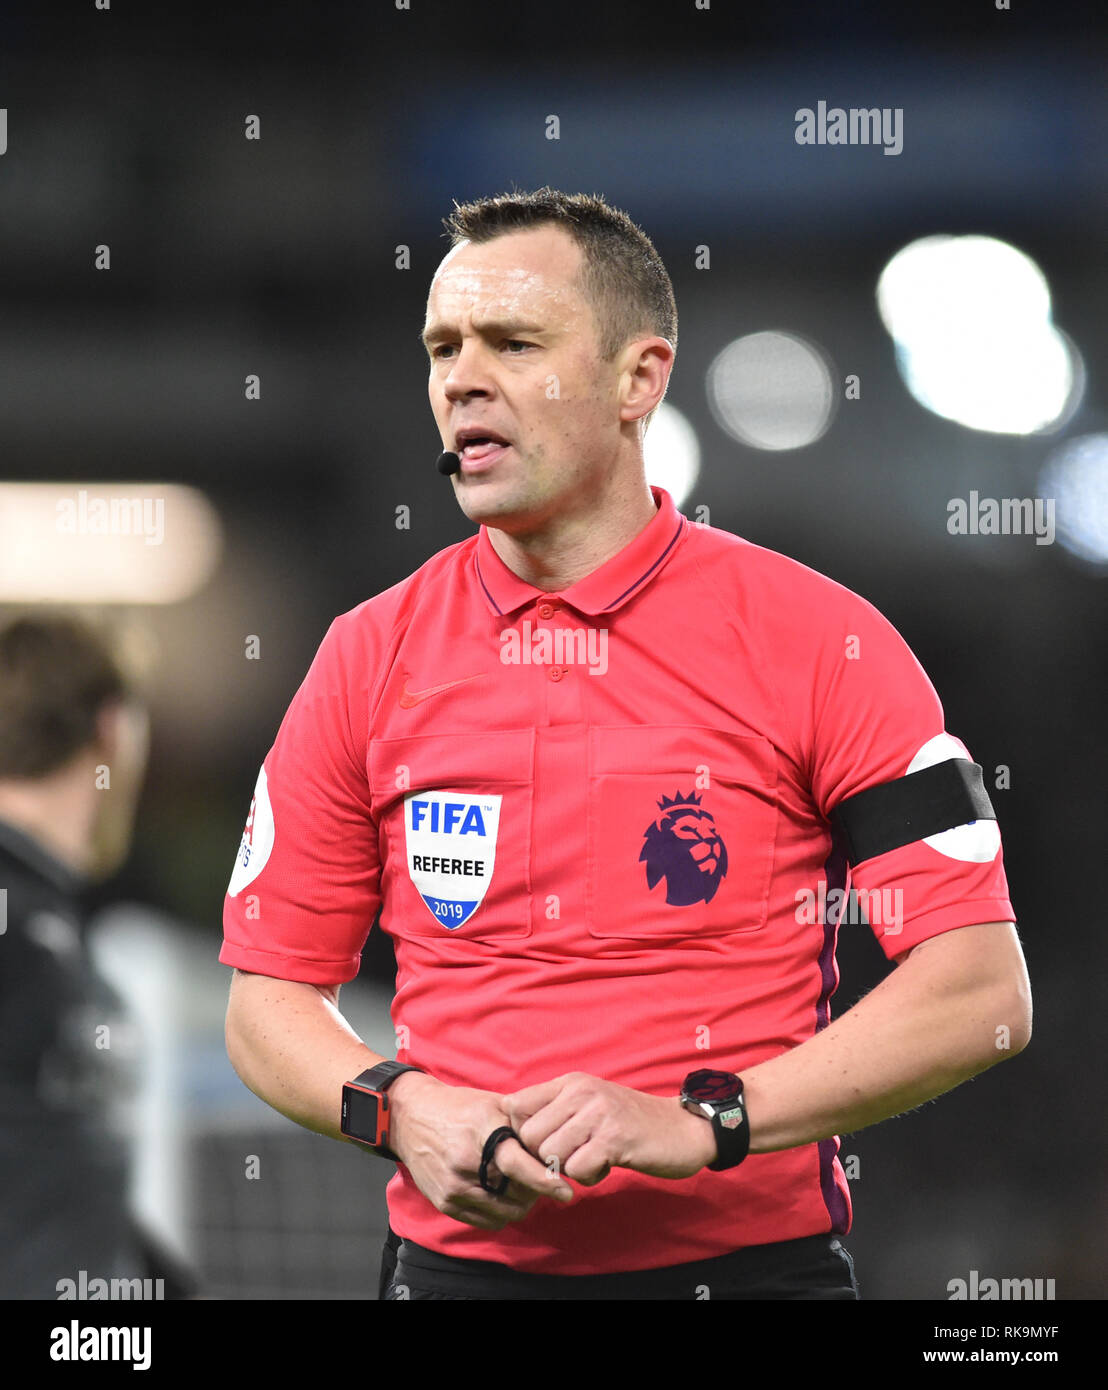 Referee Stuart Attwell during the Premier League match between Brighton & Hove Albion and Burnley at the American Express Community Stadium . 09 February 2019   Editorial use only. No merchandising. For Football images FA and Premier League restrictions apply inc. no internet/mobile usage without FAPL license - for details contact Football Dataco - Stock Image